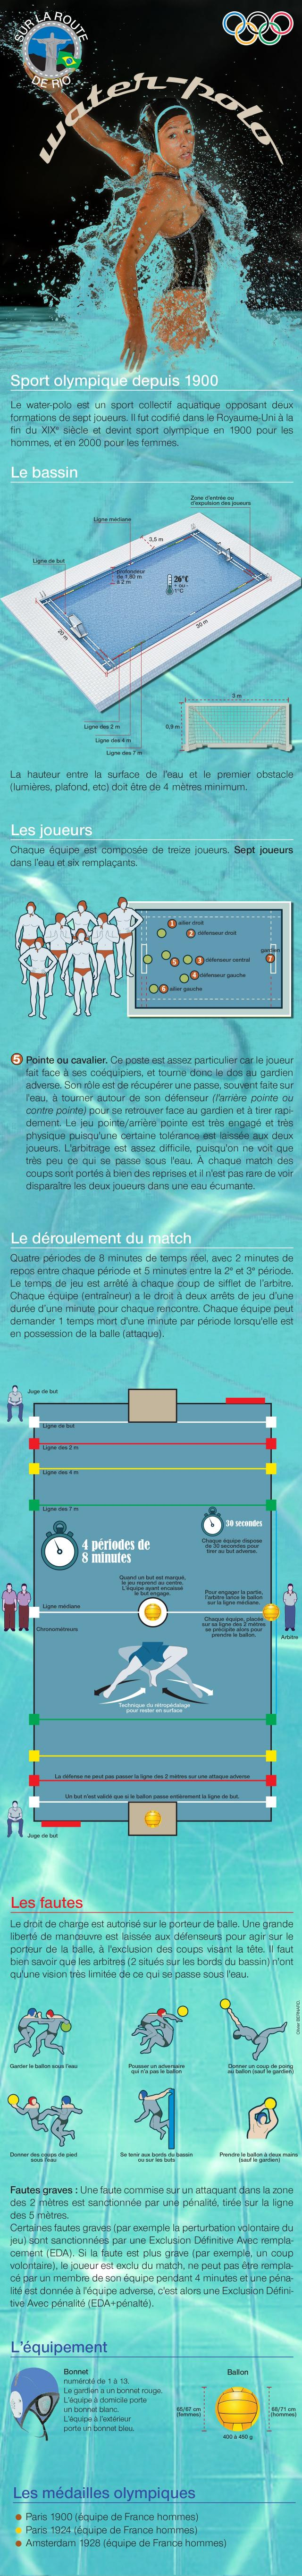 jo.water-polo-discipline-olympique_0